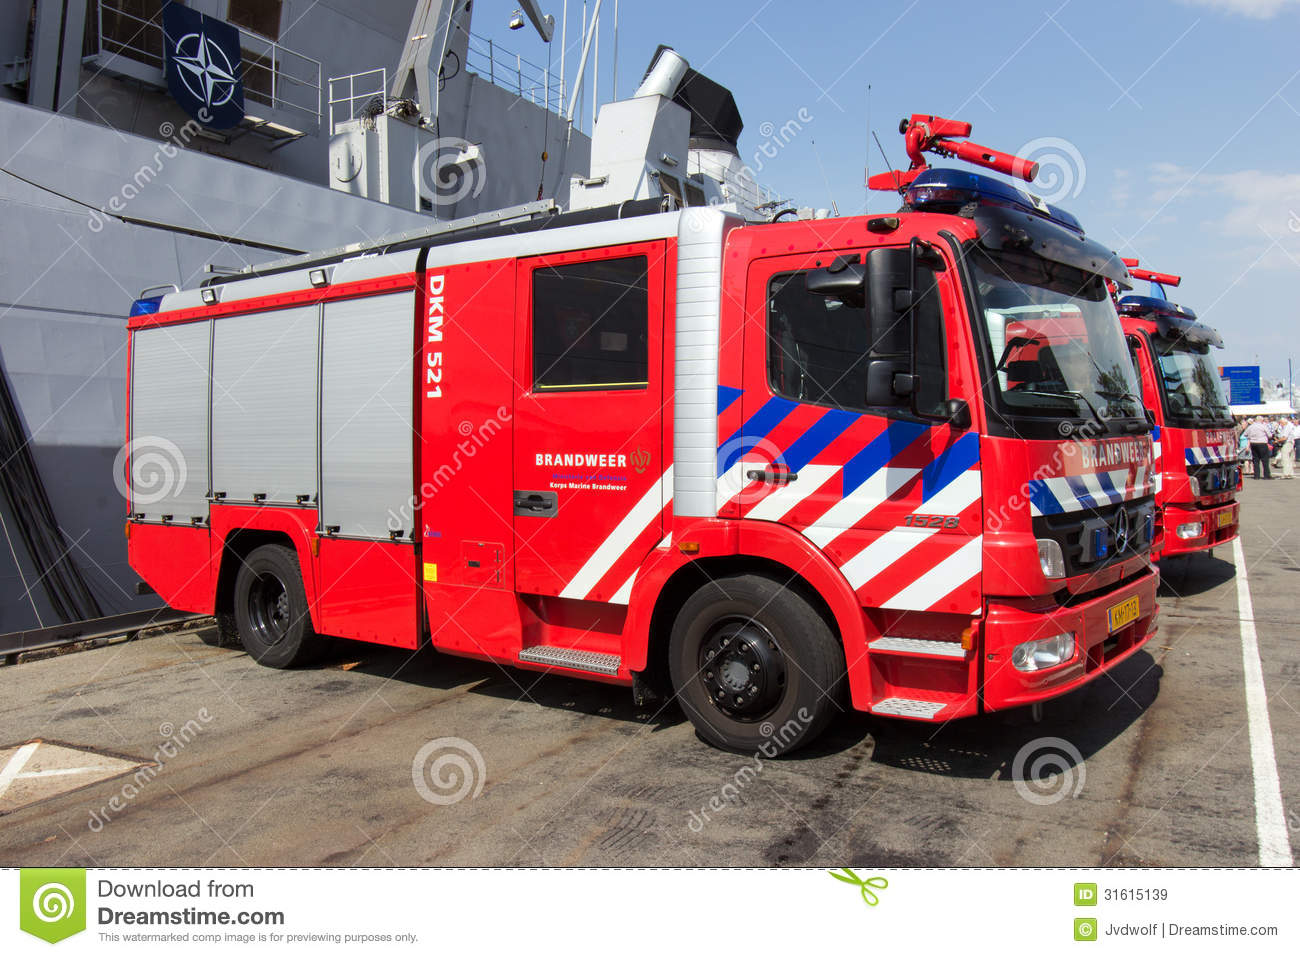 fire truck editorial stock image  image of engine  siren